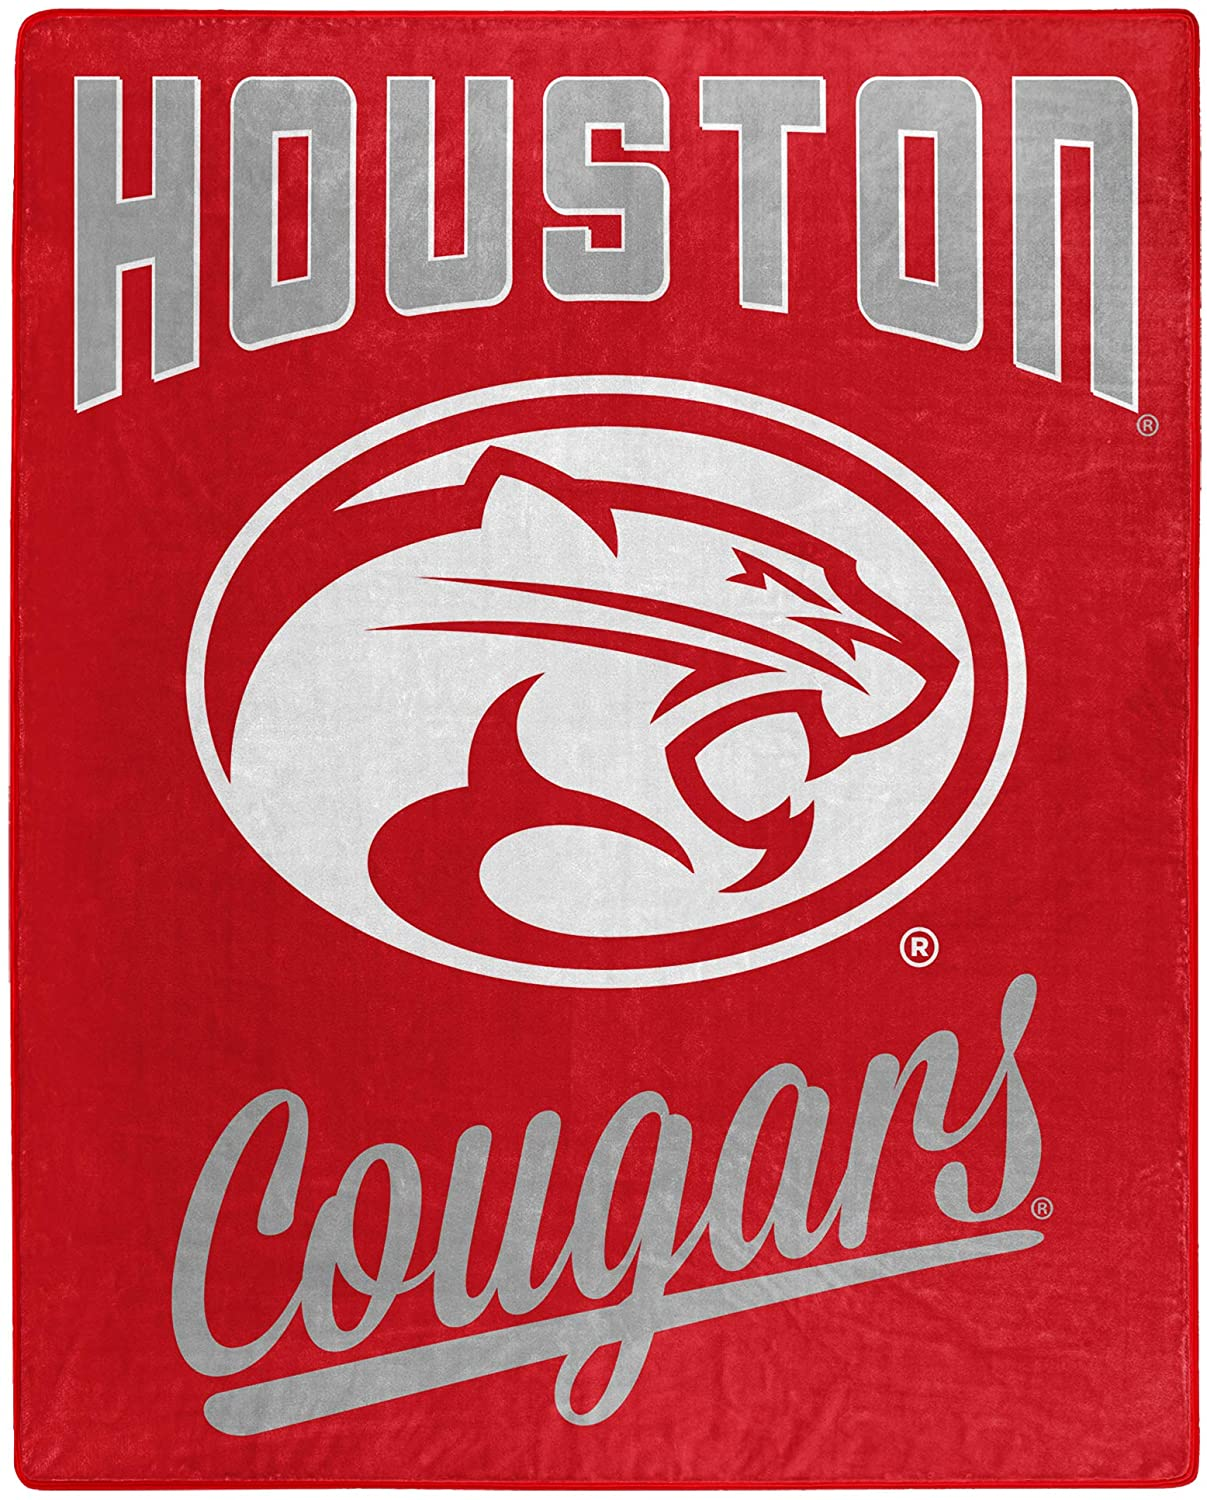 Printed Throw Houston Cougars Fleece Blanket